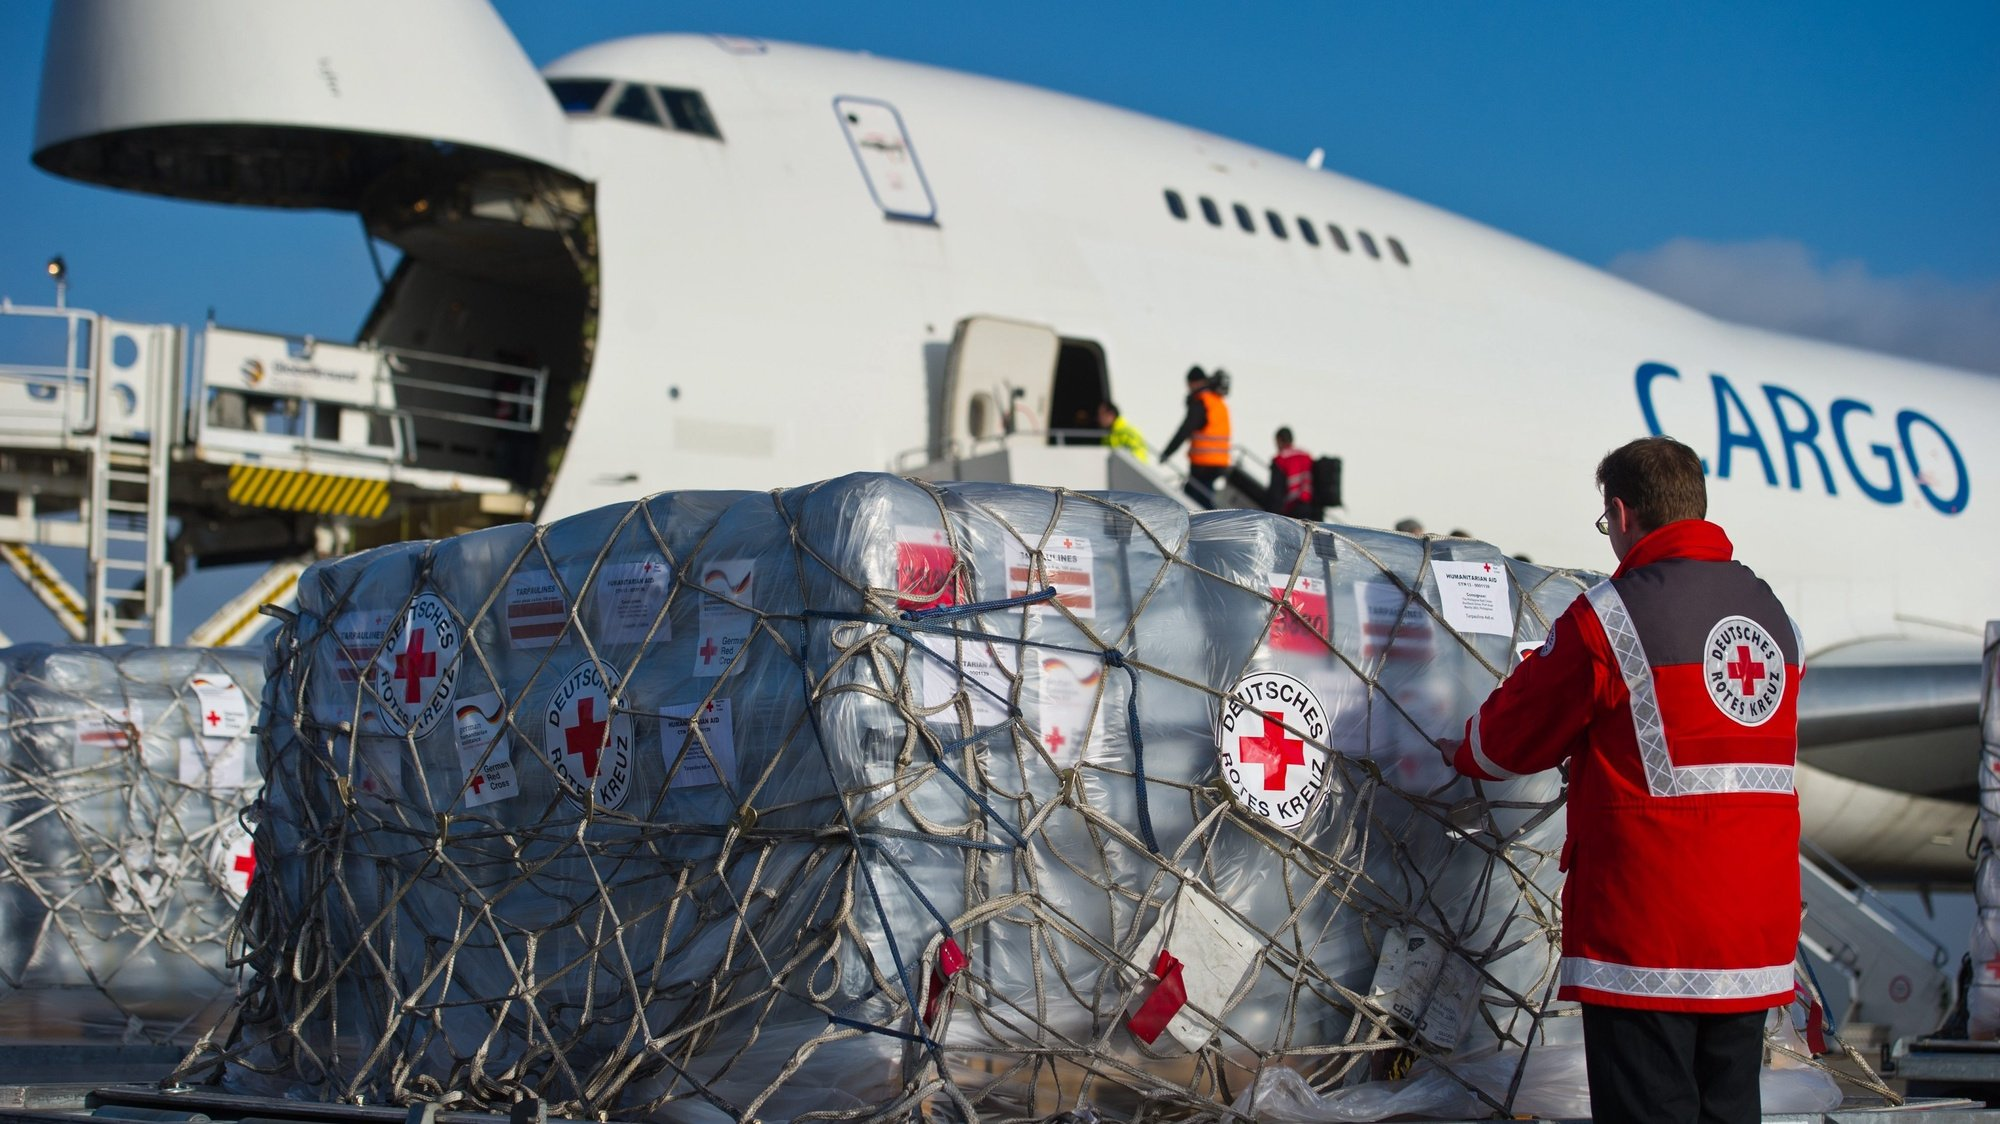 epa03947921 Relief supplies for the victims of the typhoon in the Philippines are loaded into an aircraft at Schoenfeld Airport in Schoenefeld, Germany, 13 November 2013. 70 tons of freight are sent by the German Red Cross and the Federal Agency for Technical Relief to the Cebu region that has been hit the worst by the typhoon.  EPA/PATRICK PLEUL